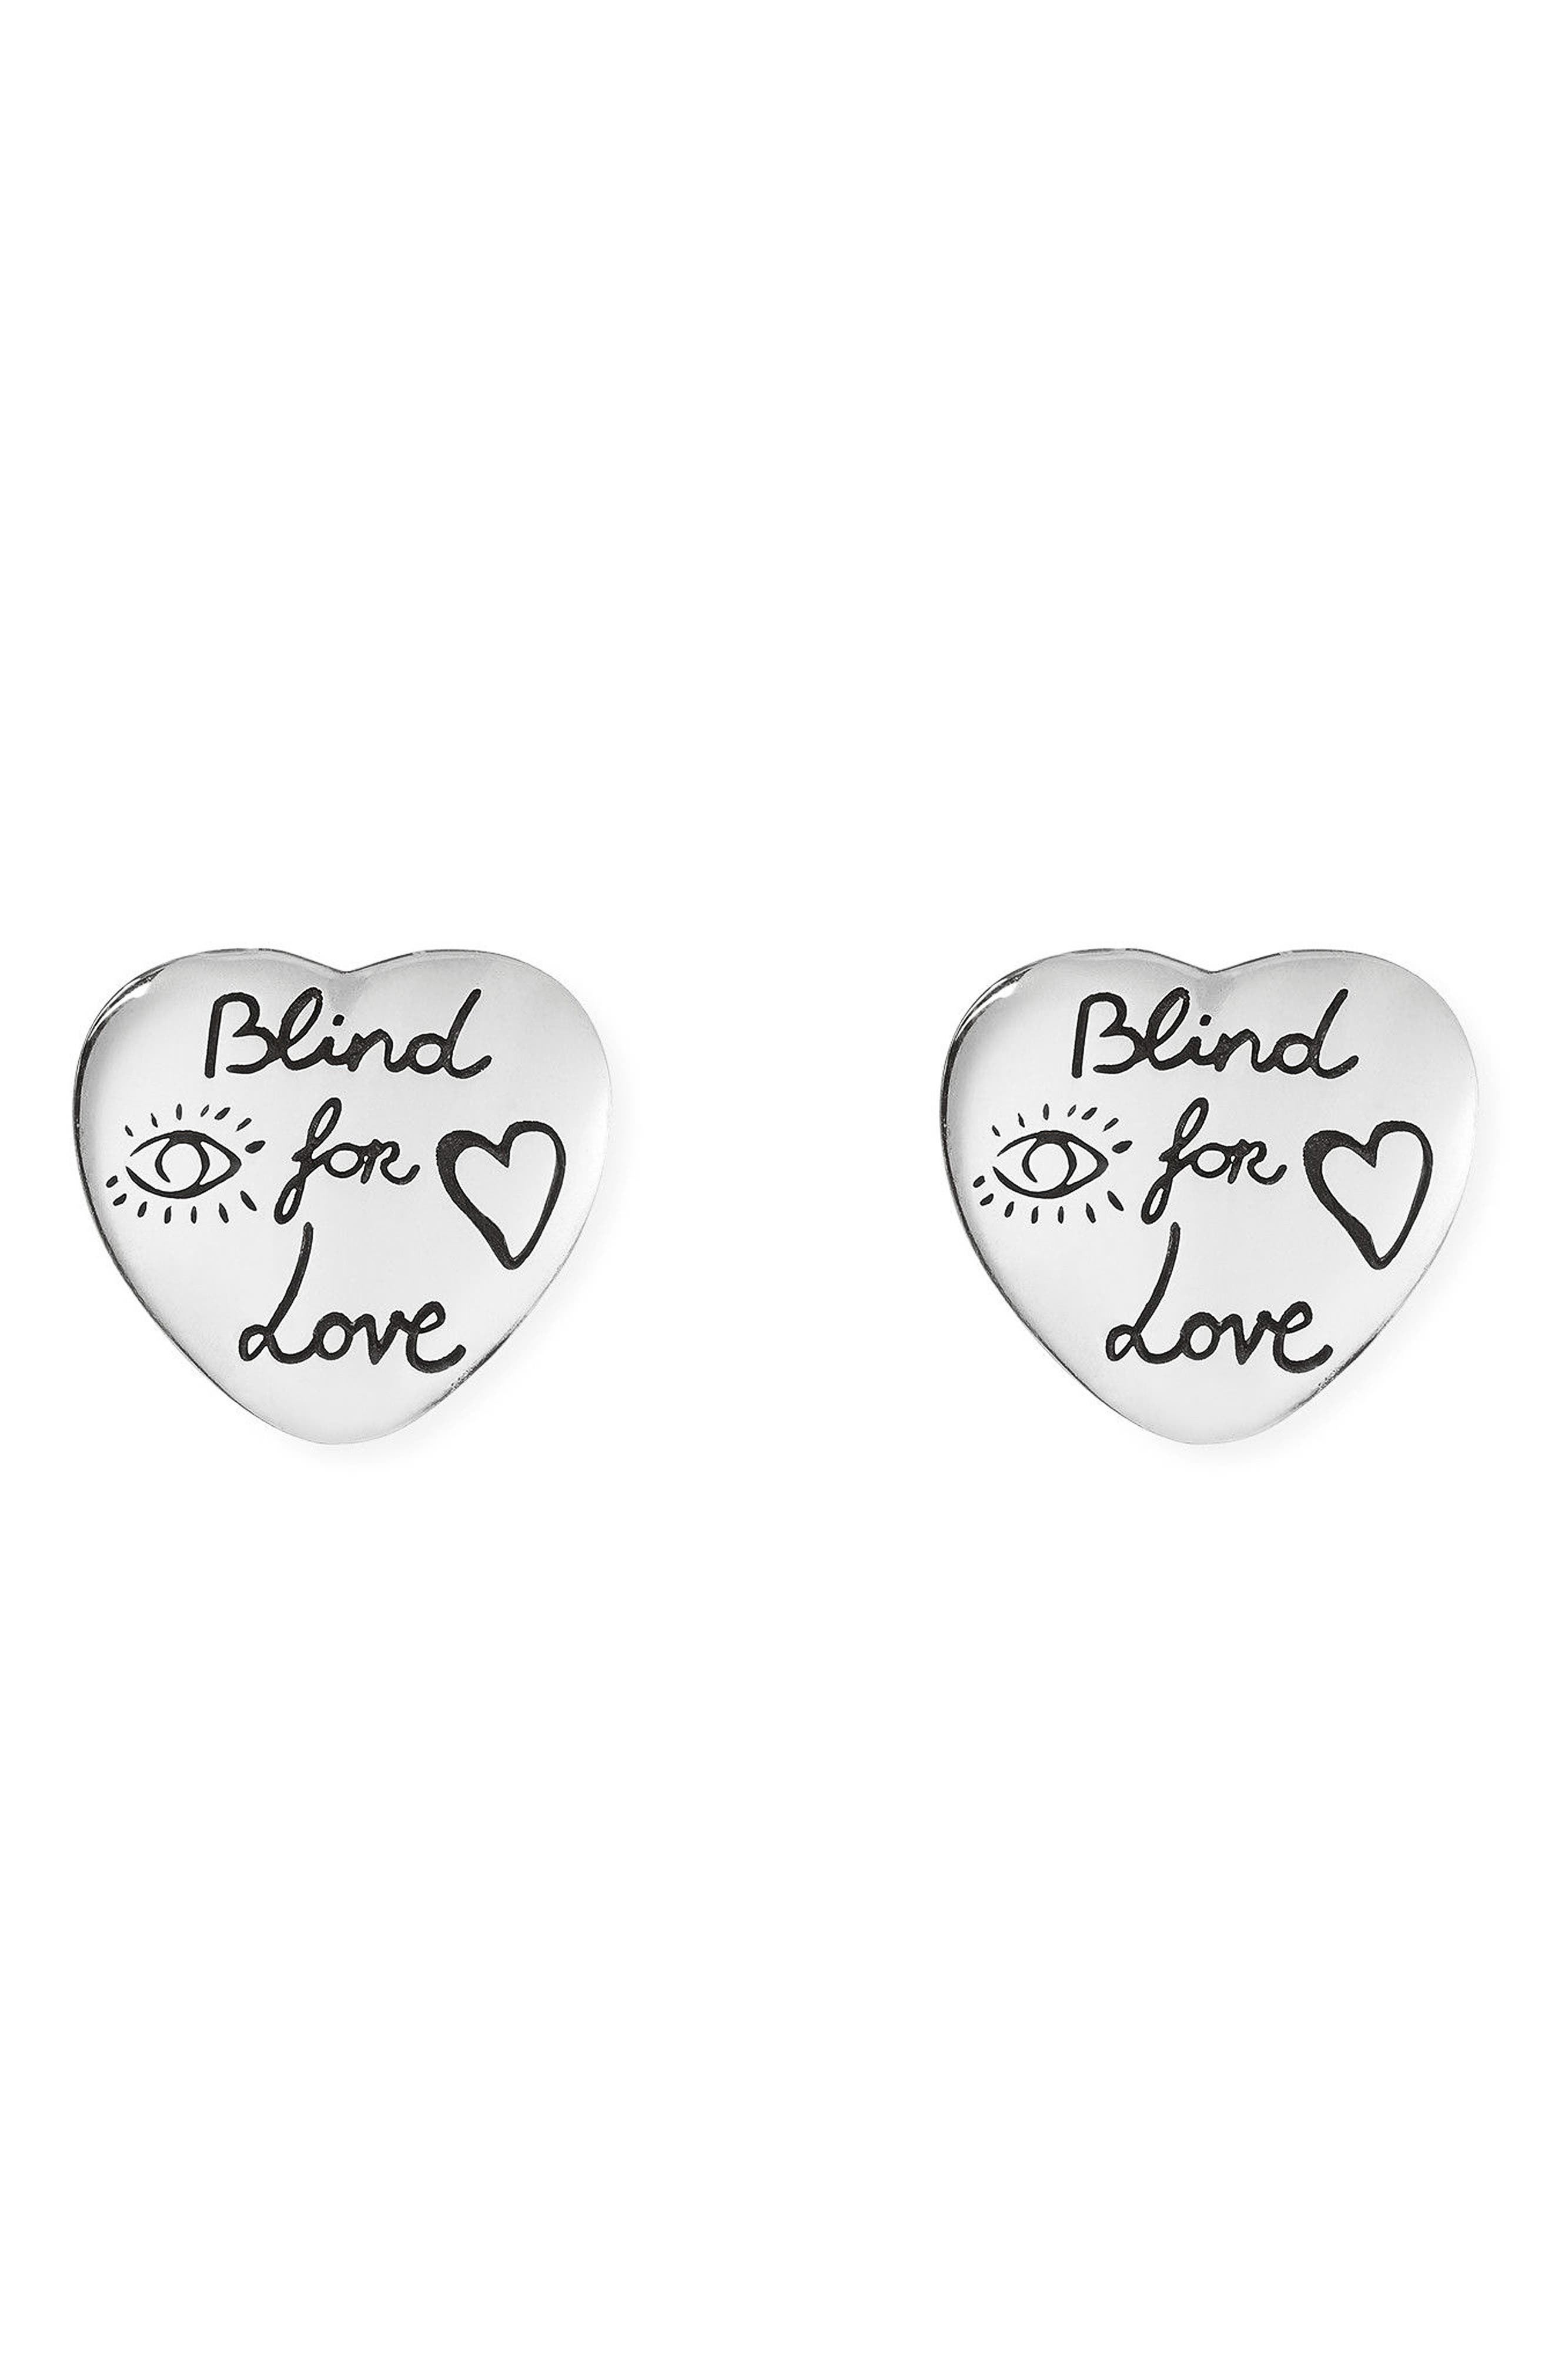 Blind for Love Stud Earrings,                         Main,                         color, STERLING SILVER